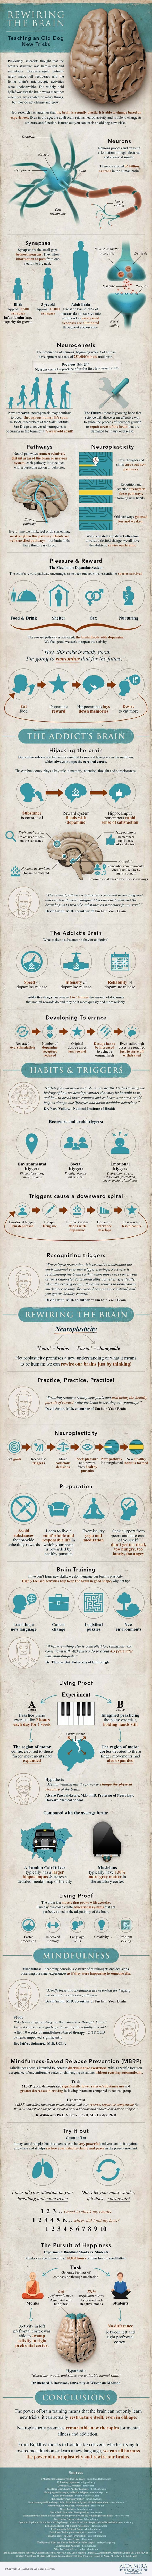 Health And Fitness: An Infographic To Tell You How Your Brain Works An...